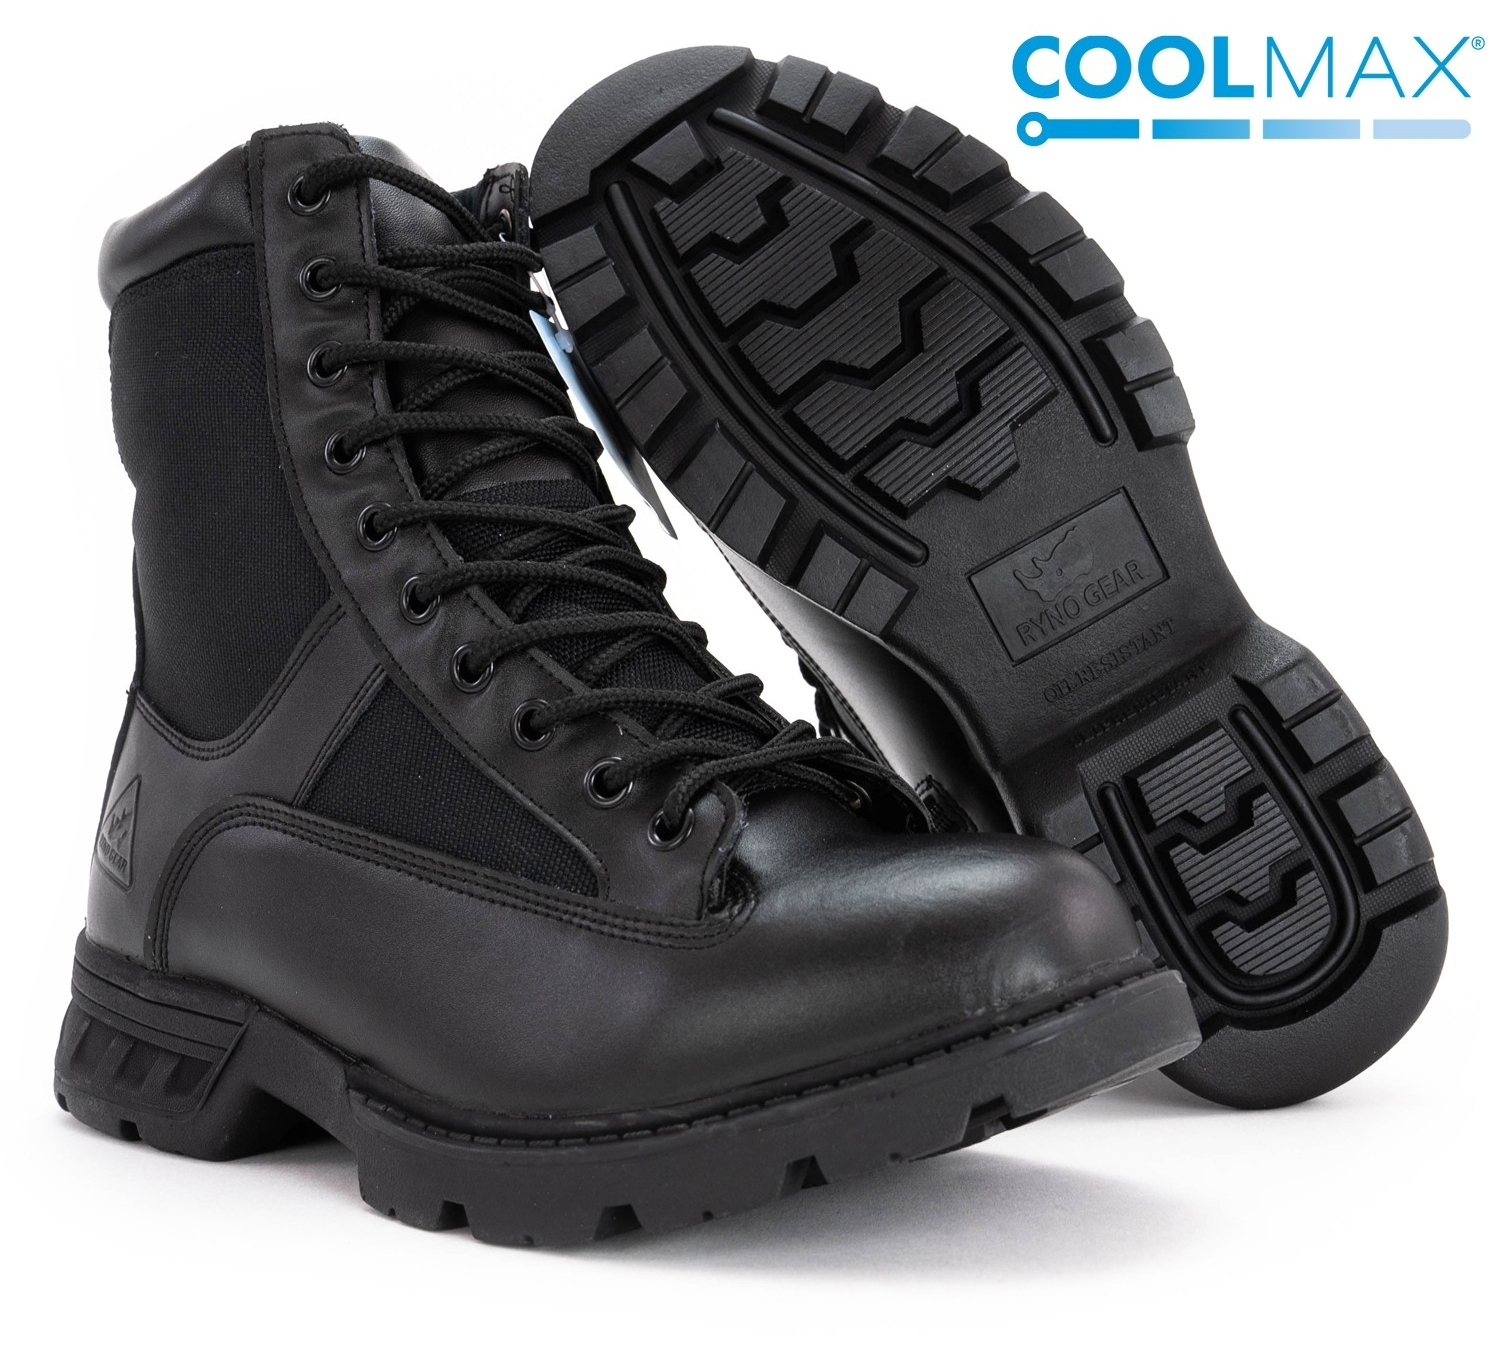 Ryno Gear Ry-Tac Peak Coolmax Tactical Boots